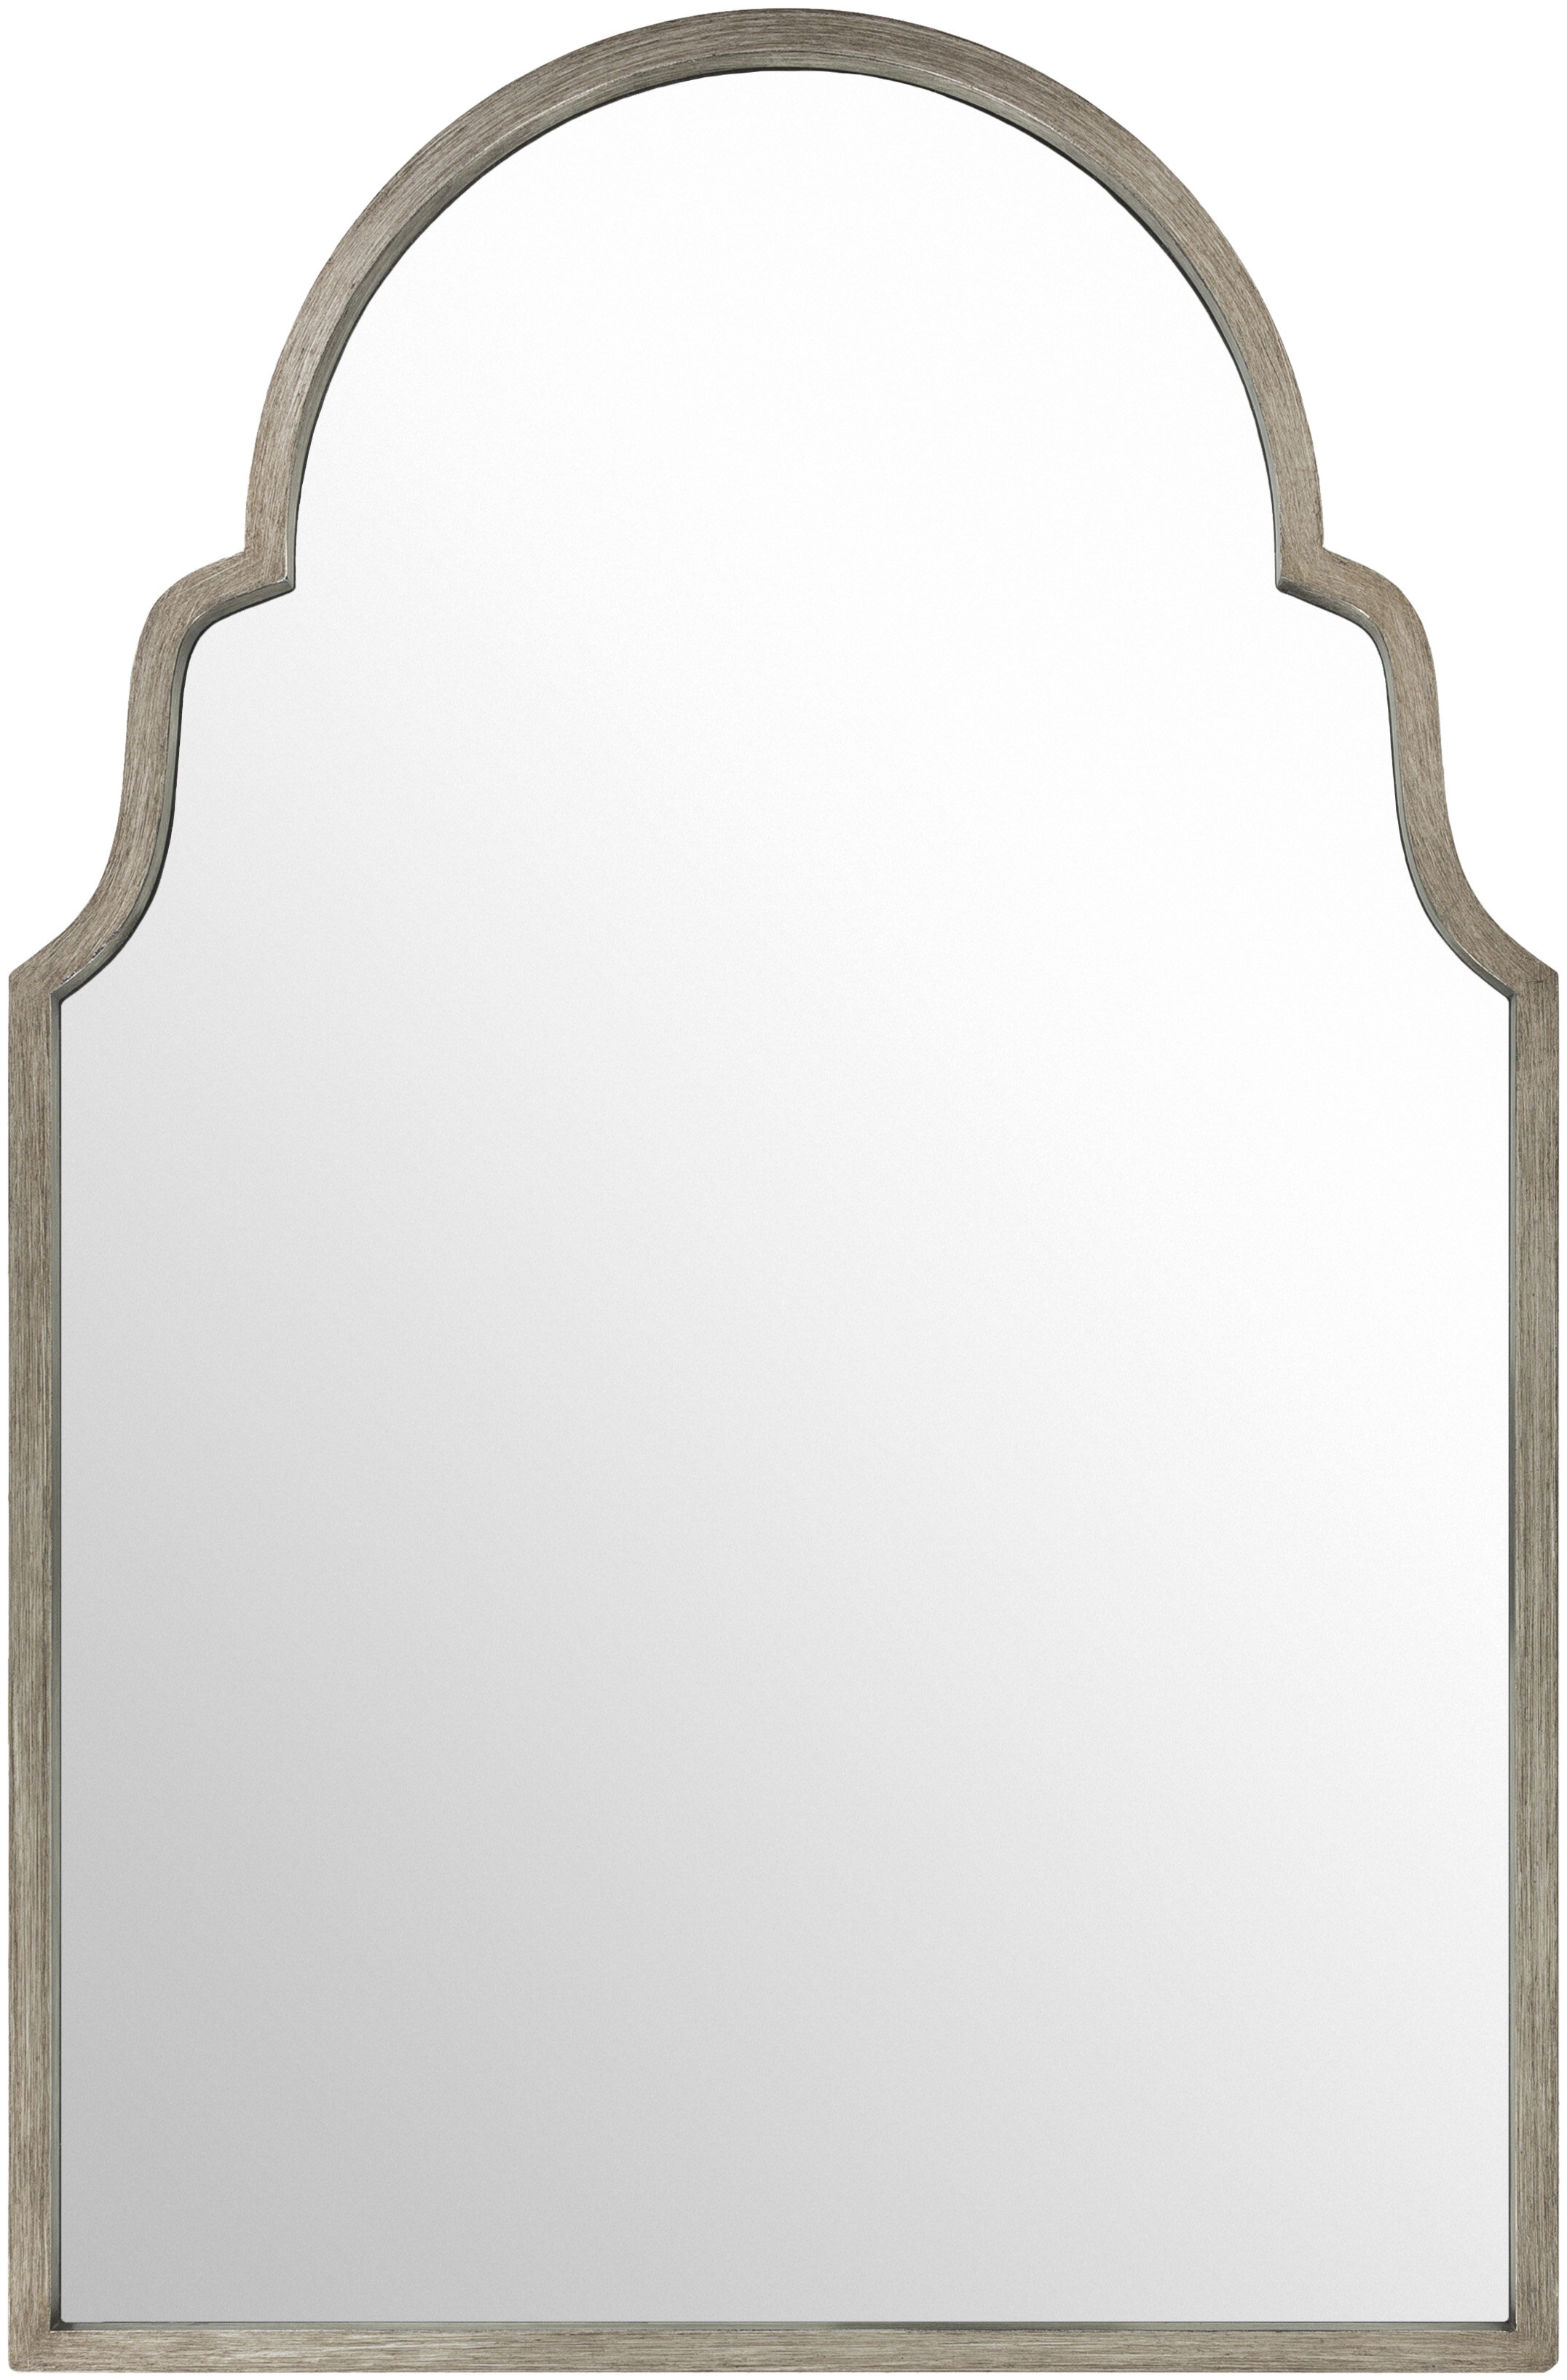 Stallings Modern And Contemporary Accent Mirror Intended For Menachem Modern & Contemporary Accent Mirrors (Image 24 of 30)